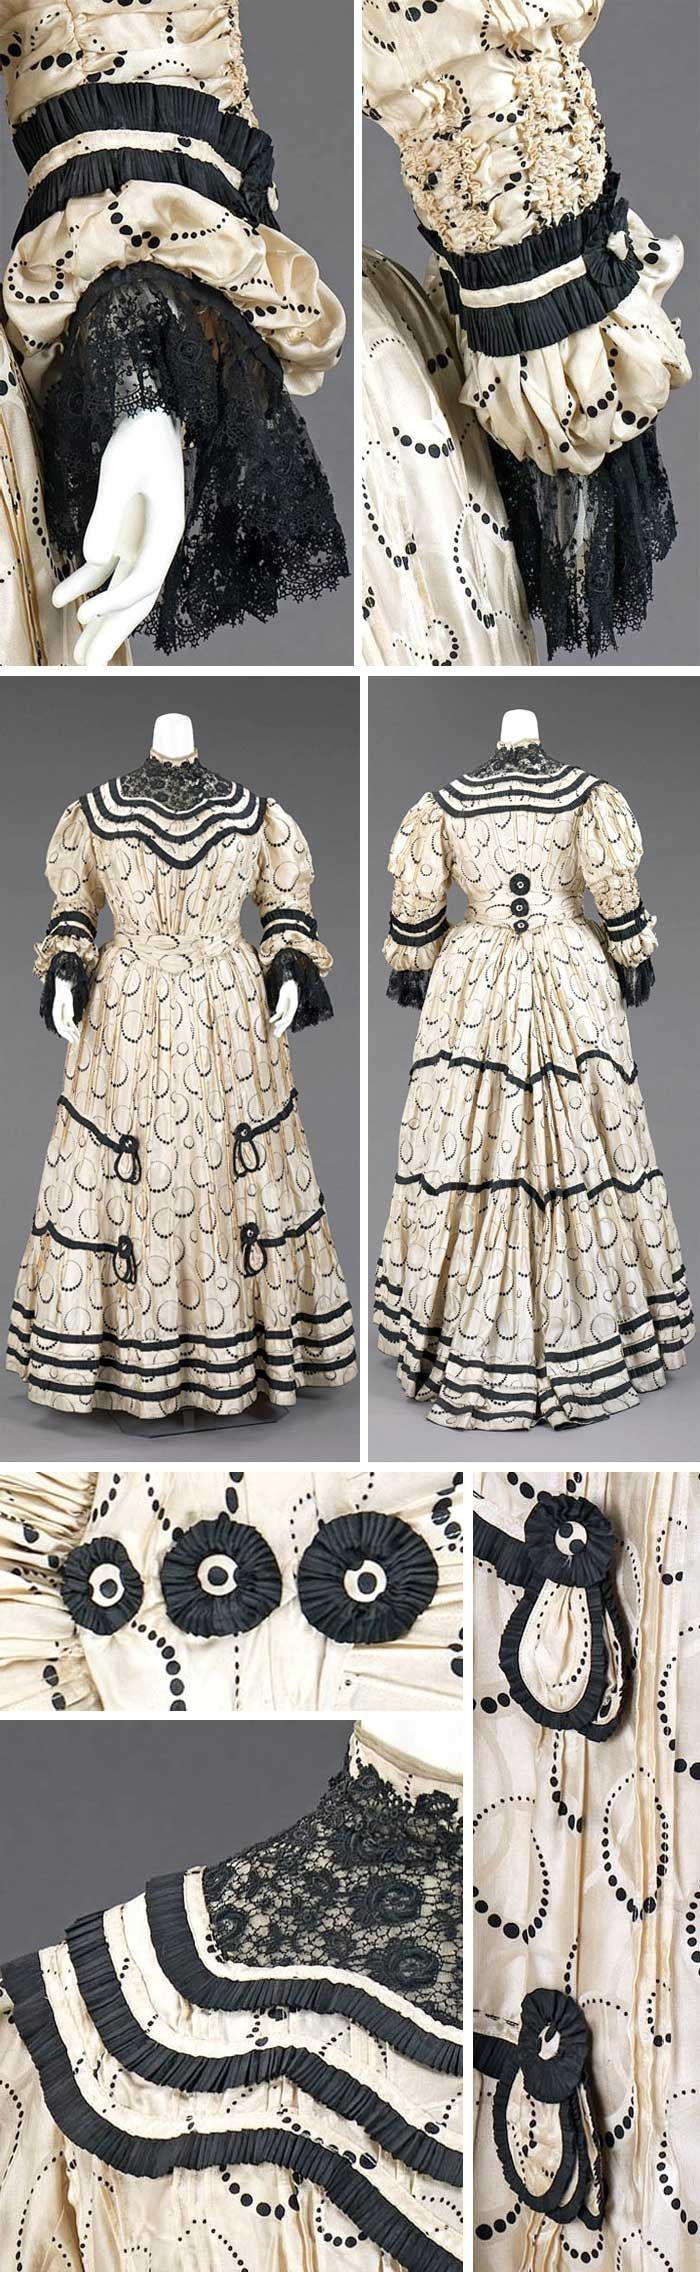 "Afternoon dress, Terhune, New York, ca. 1905. Silk. Metropolitan Museum of Art: ""This afternoon dress … differs in quality and construction from that of the French couture, but it has a distinctively jaunty feel and effective presence. The graduated dot motif of the textile has a particularly modern sensibility."""